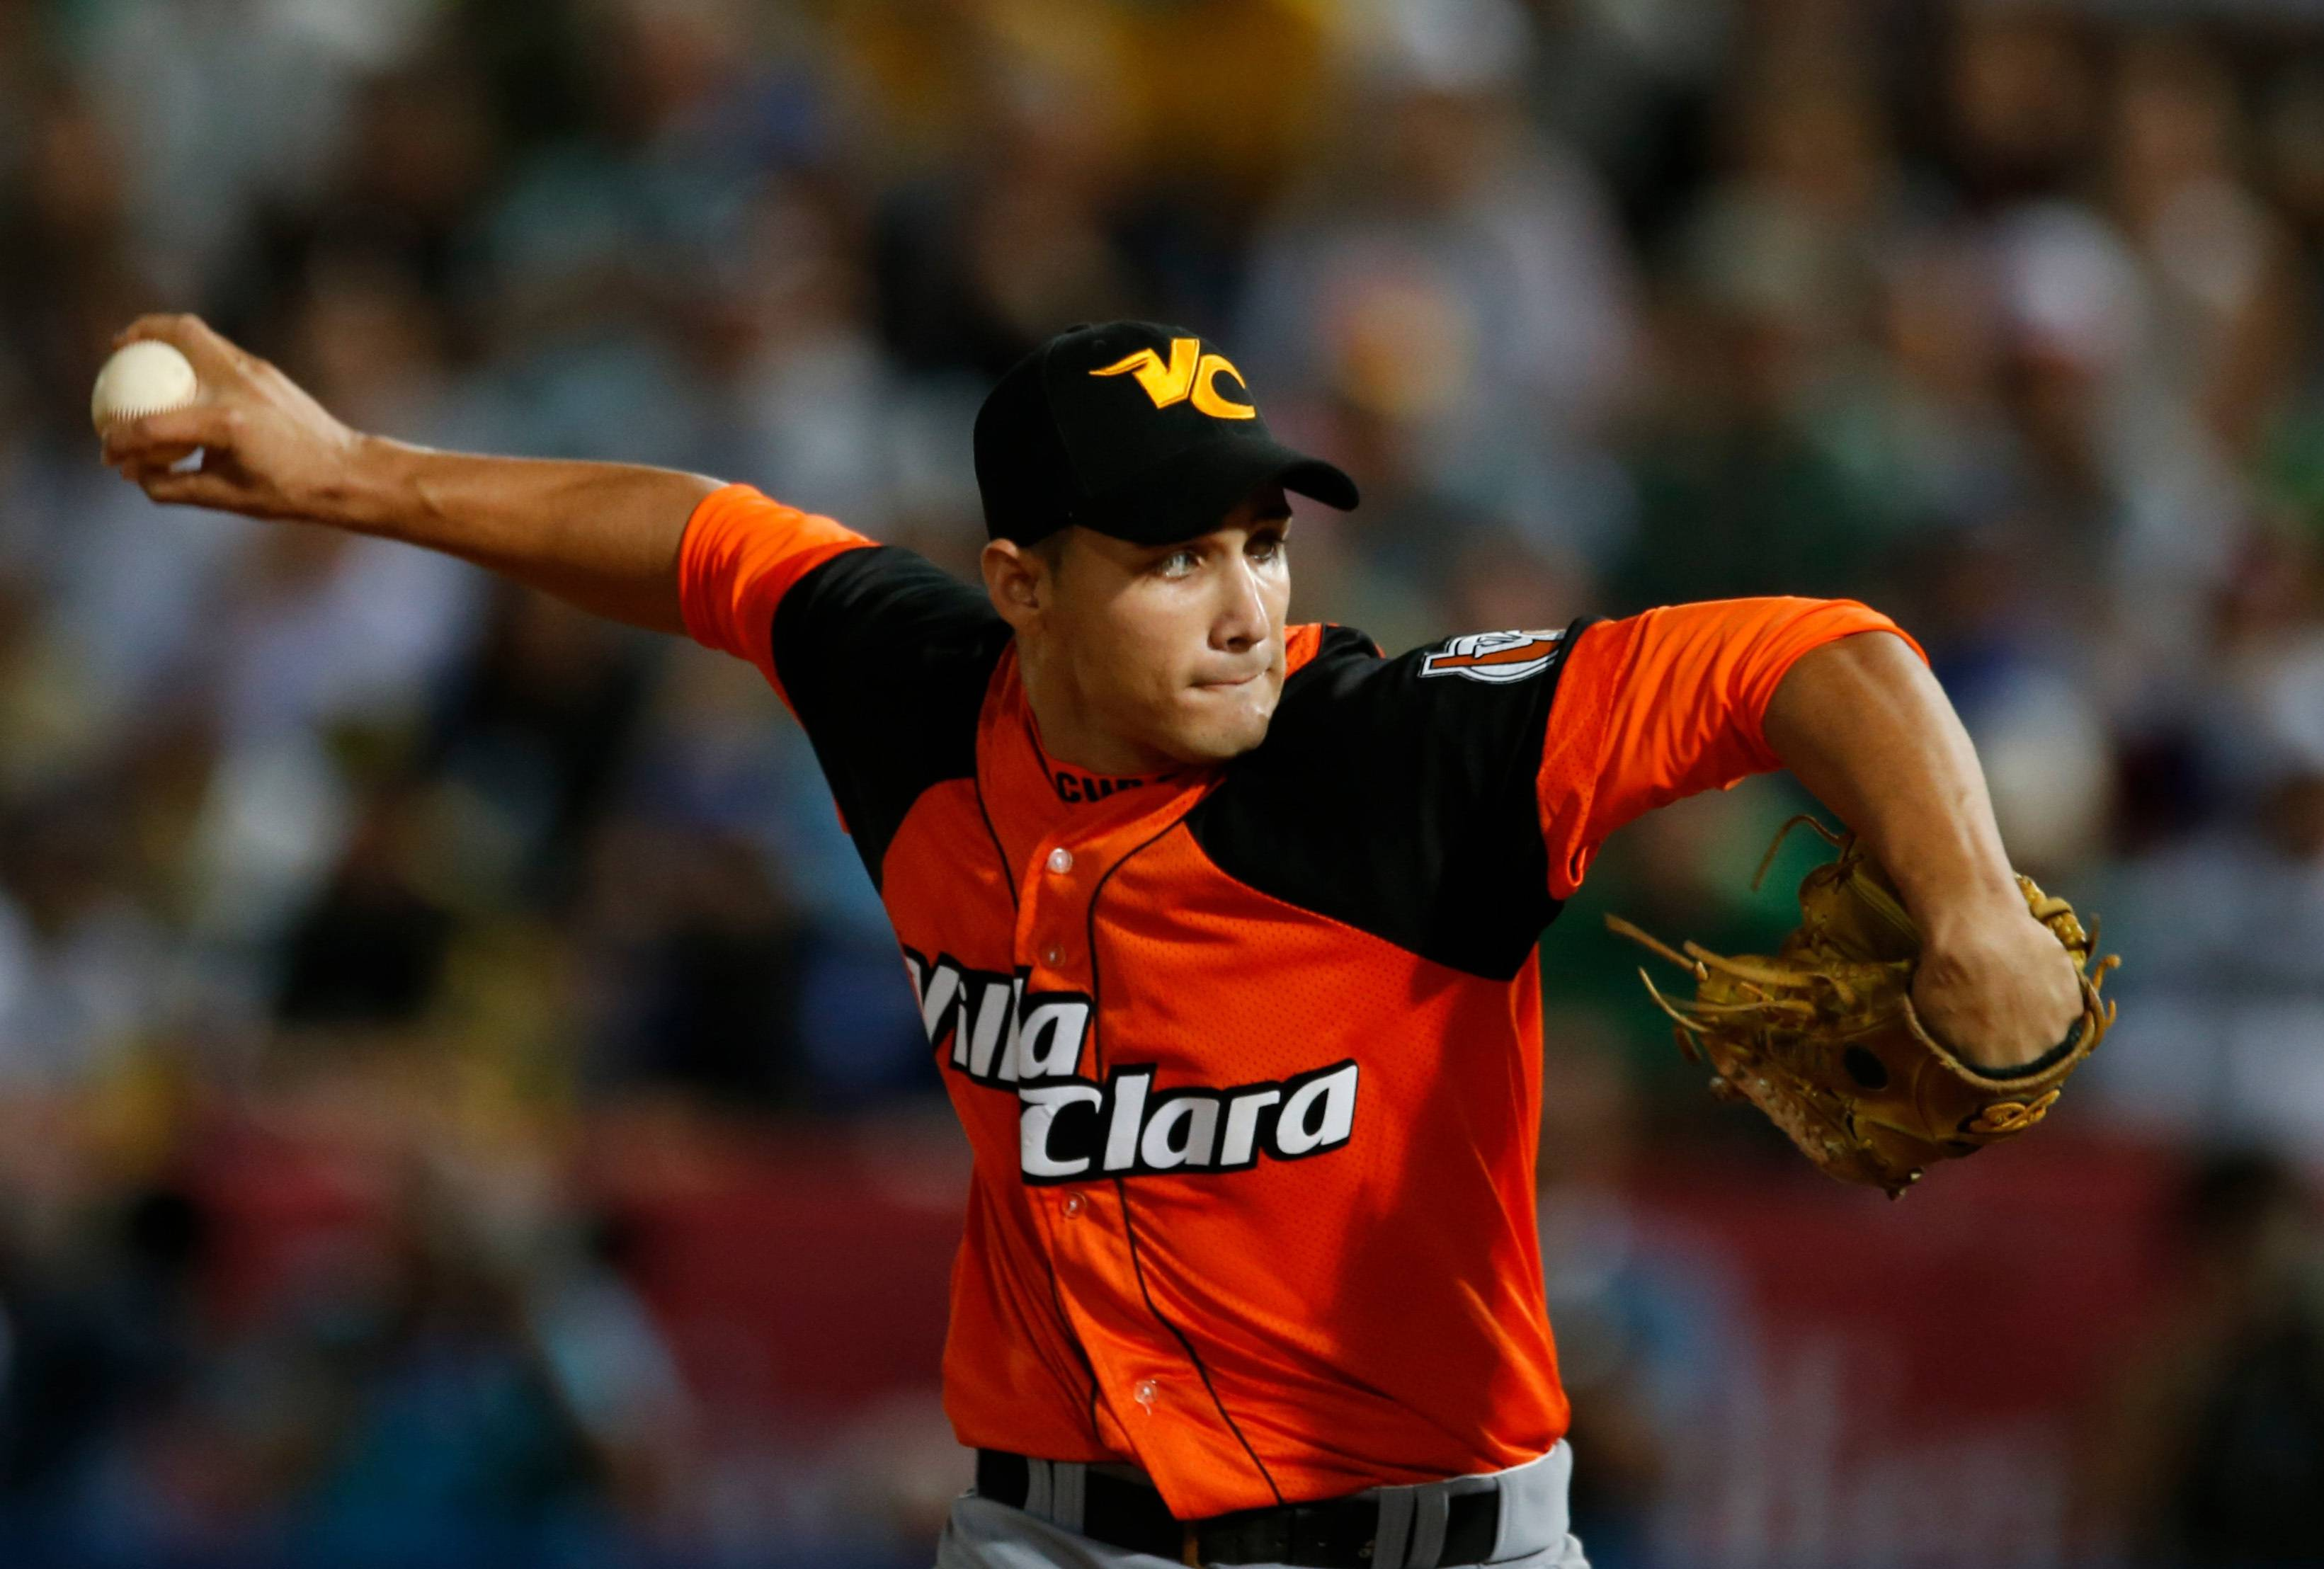 Cuba starting pitcher Norge Ruiz pitches Sunday during the first inning of the Caribbean Series baseball game against Venezuela in Porlamar, Venezuela.  Associated Press